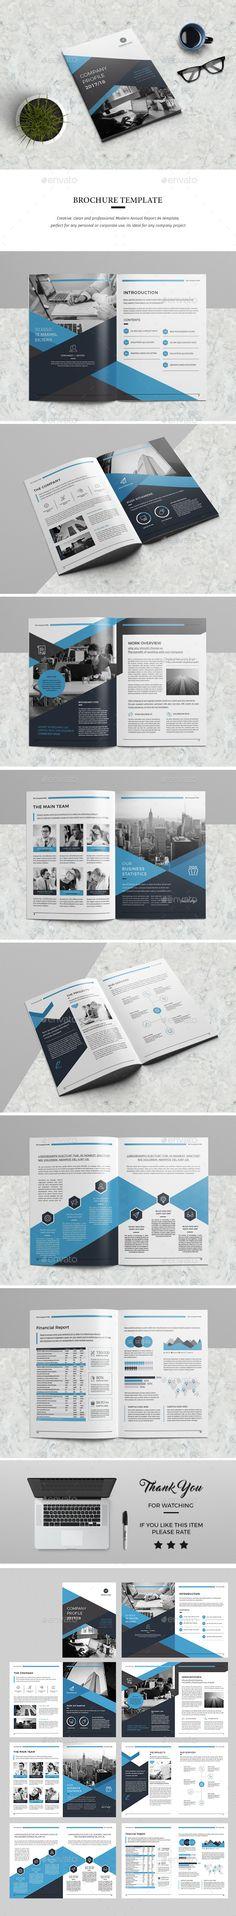 A5 Proposal | Proposal templates, Template and Brochures